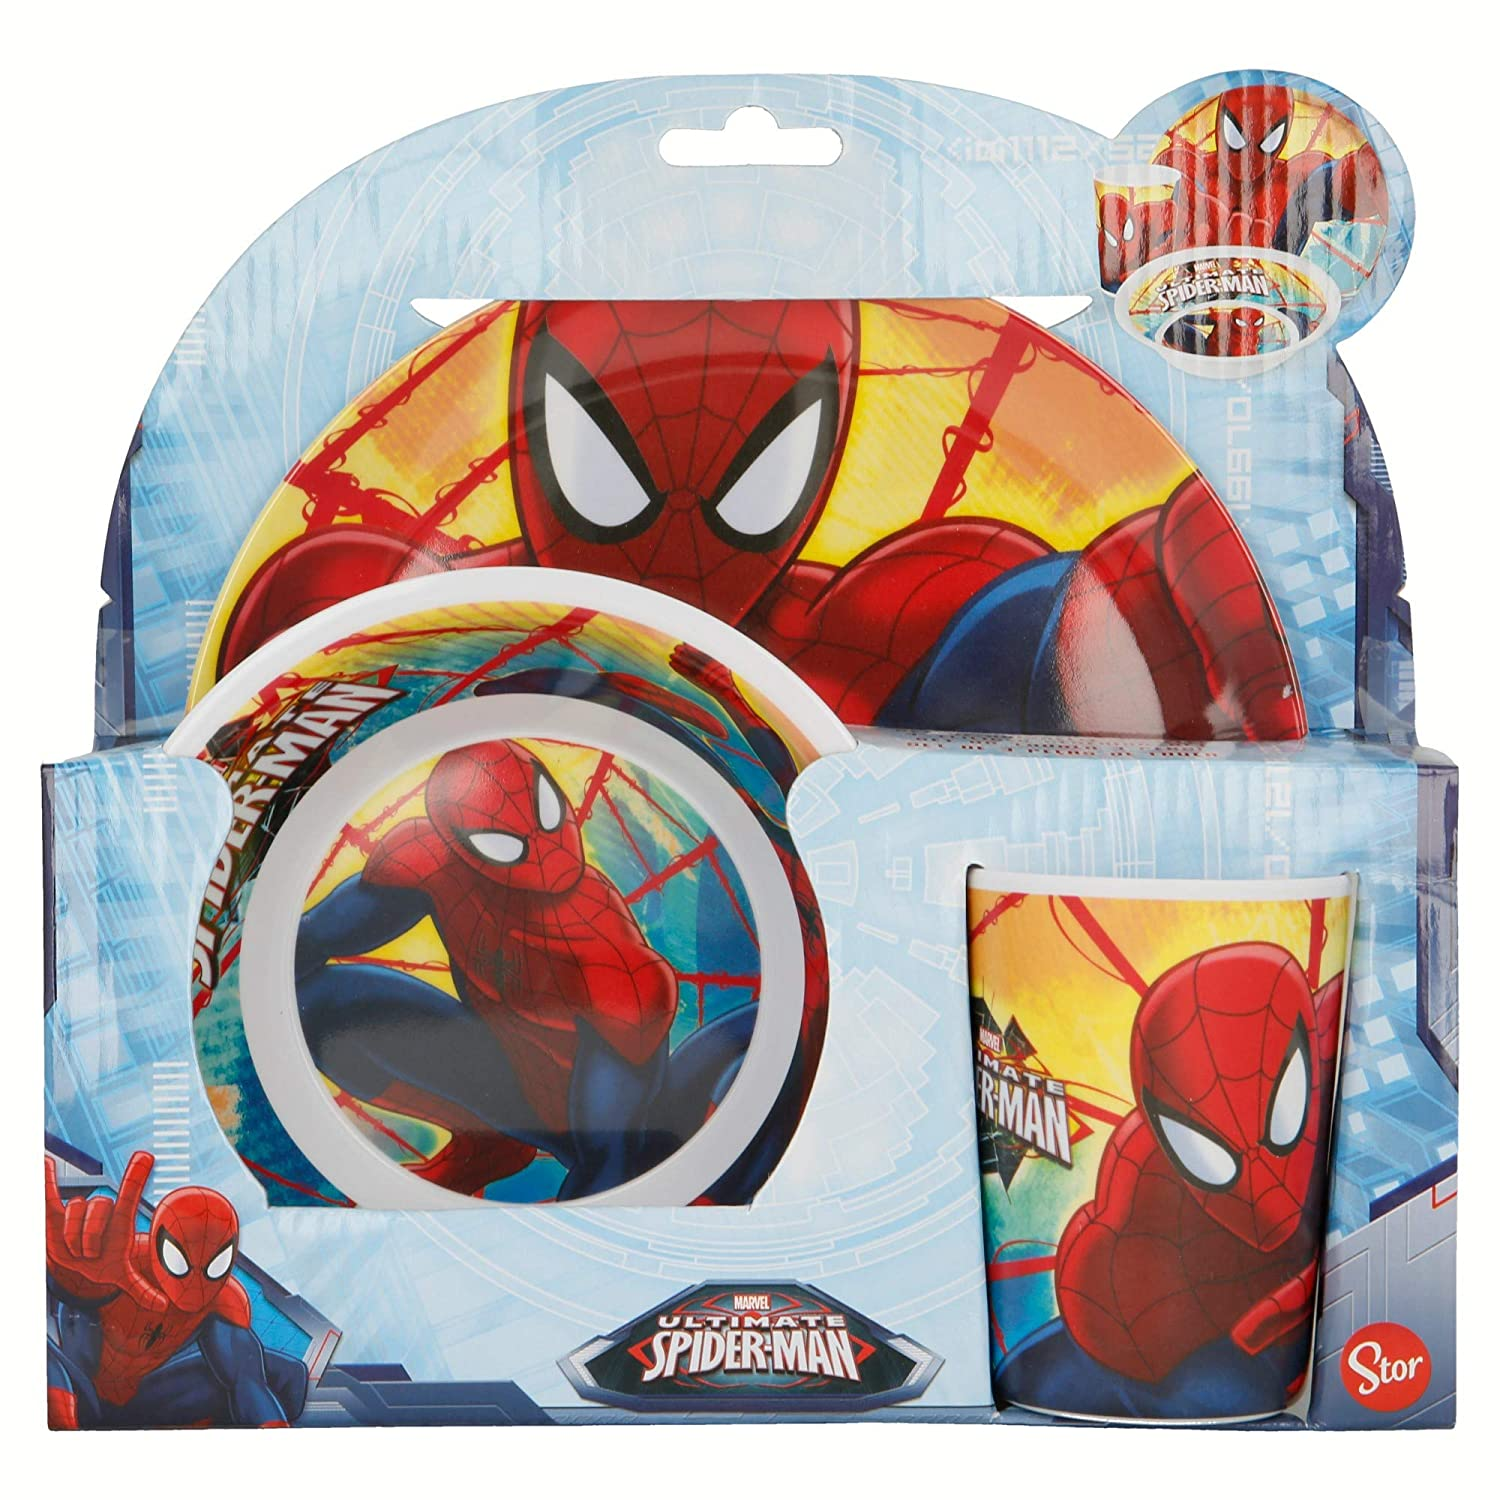 SPIDERMAN RED WEBS SET MELAMINA 3 PCS. PLATO, CUENCO Y VASO